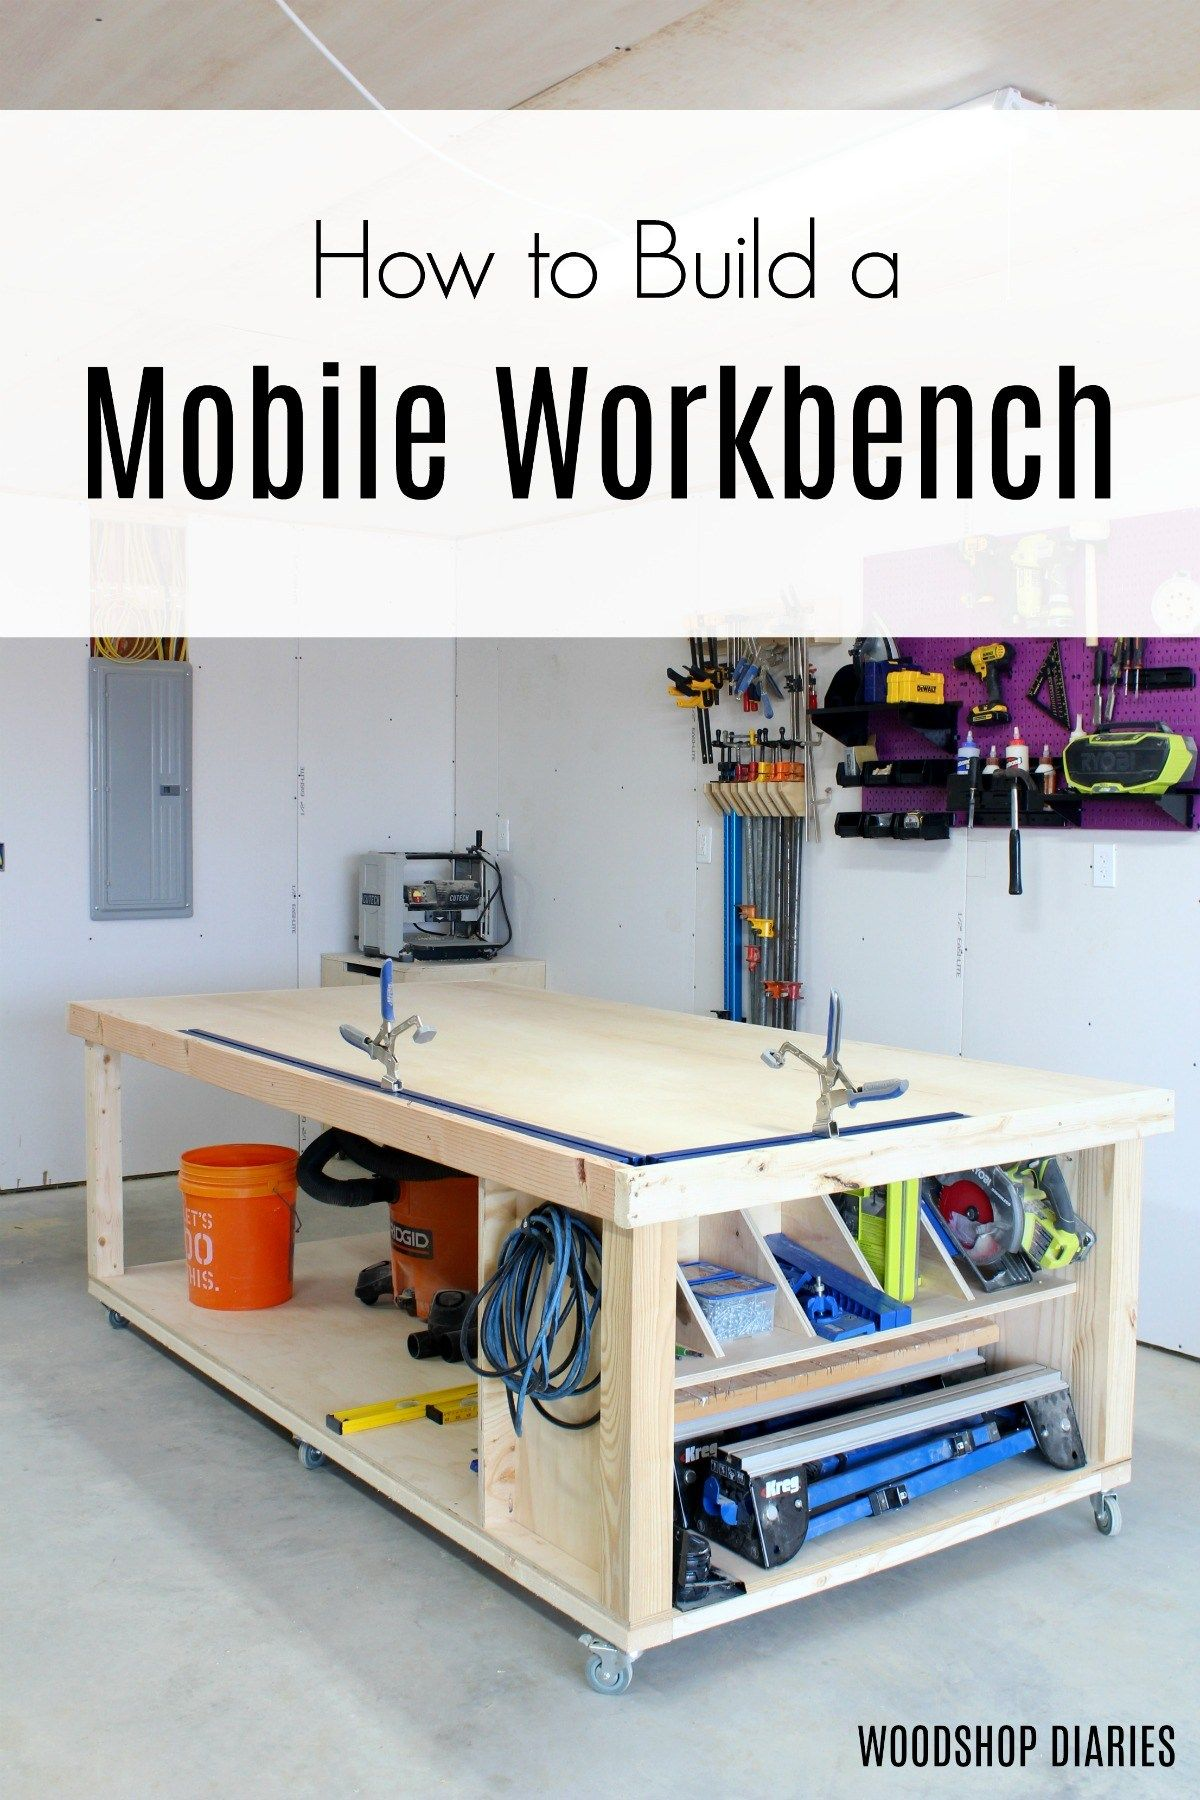 How to Build a DIY Mobile Workbench Mobile workbench